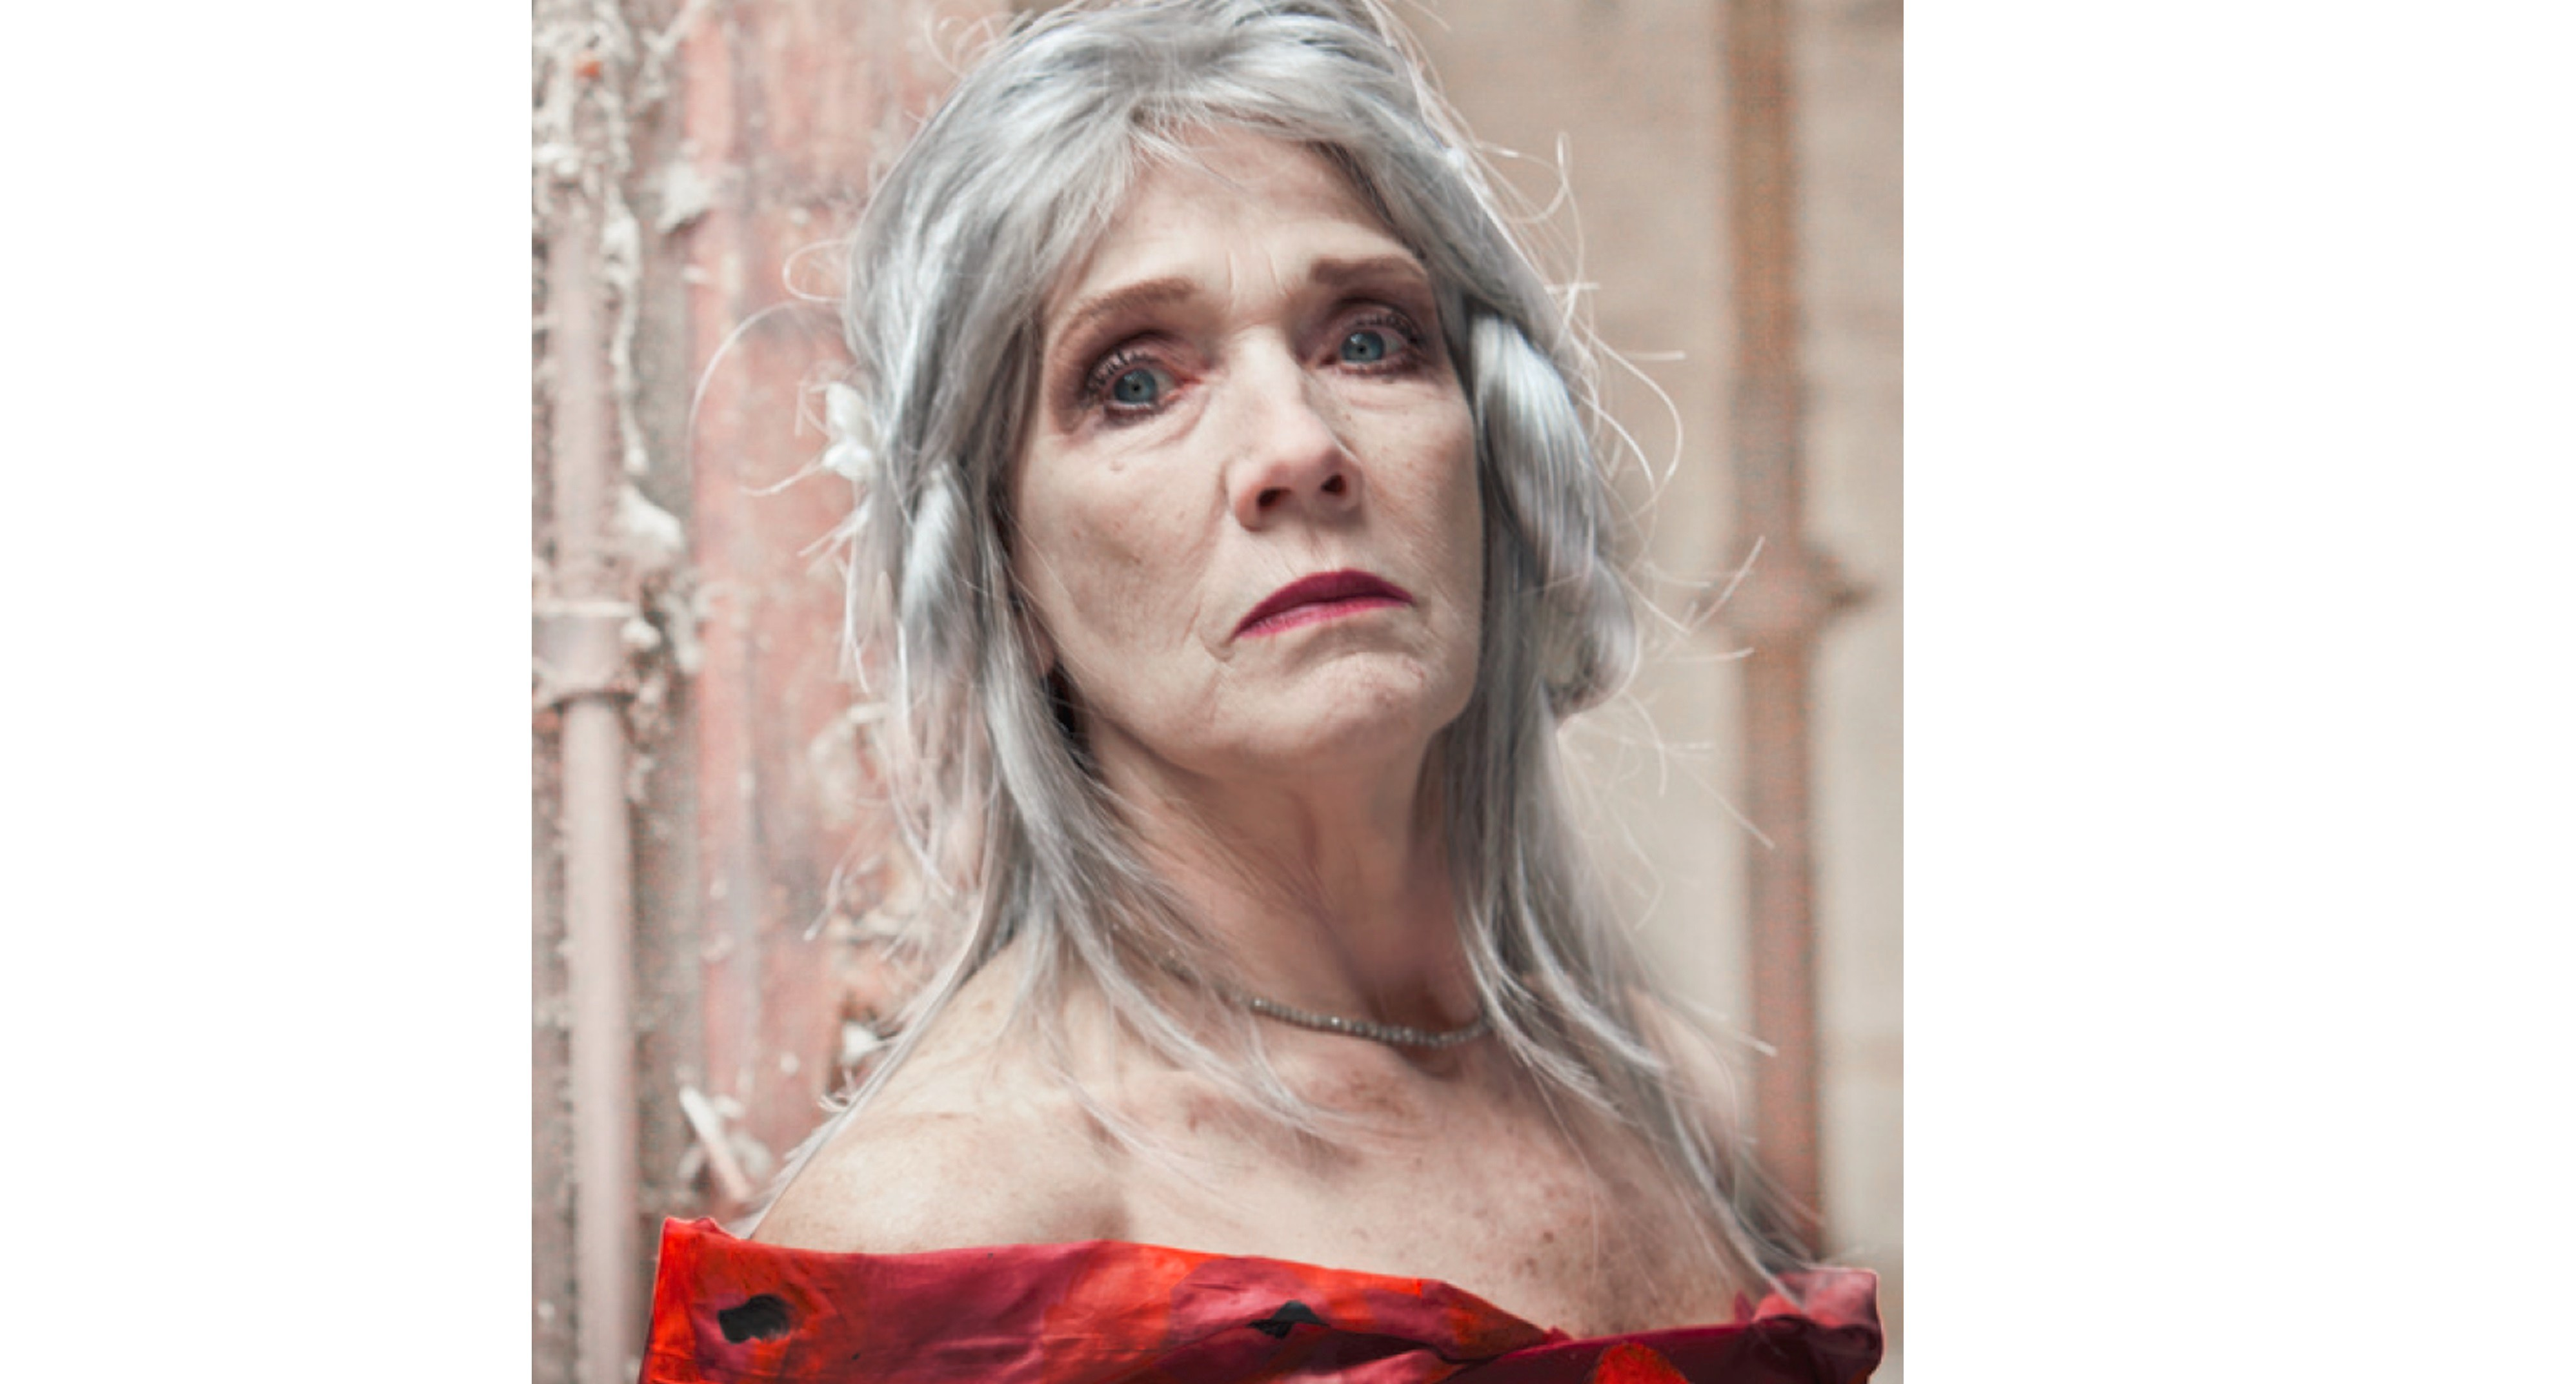 characterization of miss havisham What are some personality traits of miss havisham for each trait, please provide a quote from the novel between chapters 8 and 19 of charles dickens' great expectations.